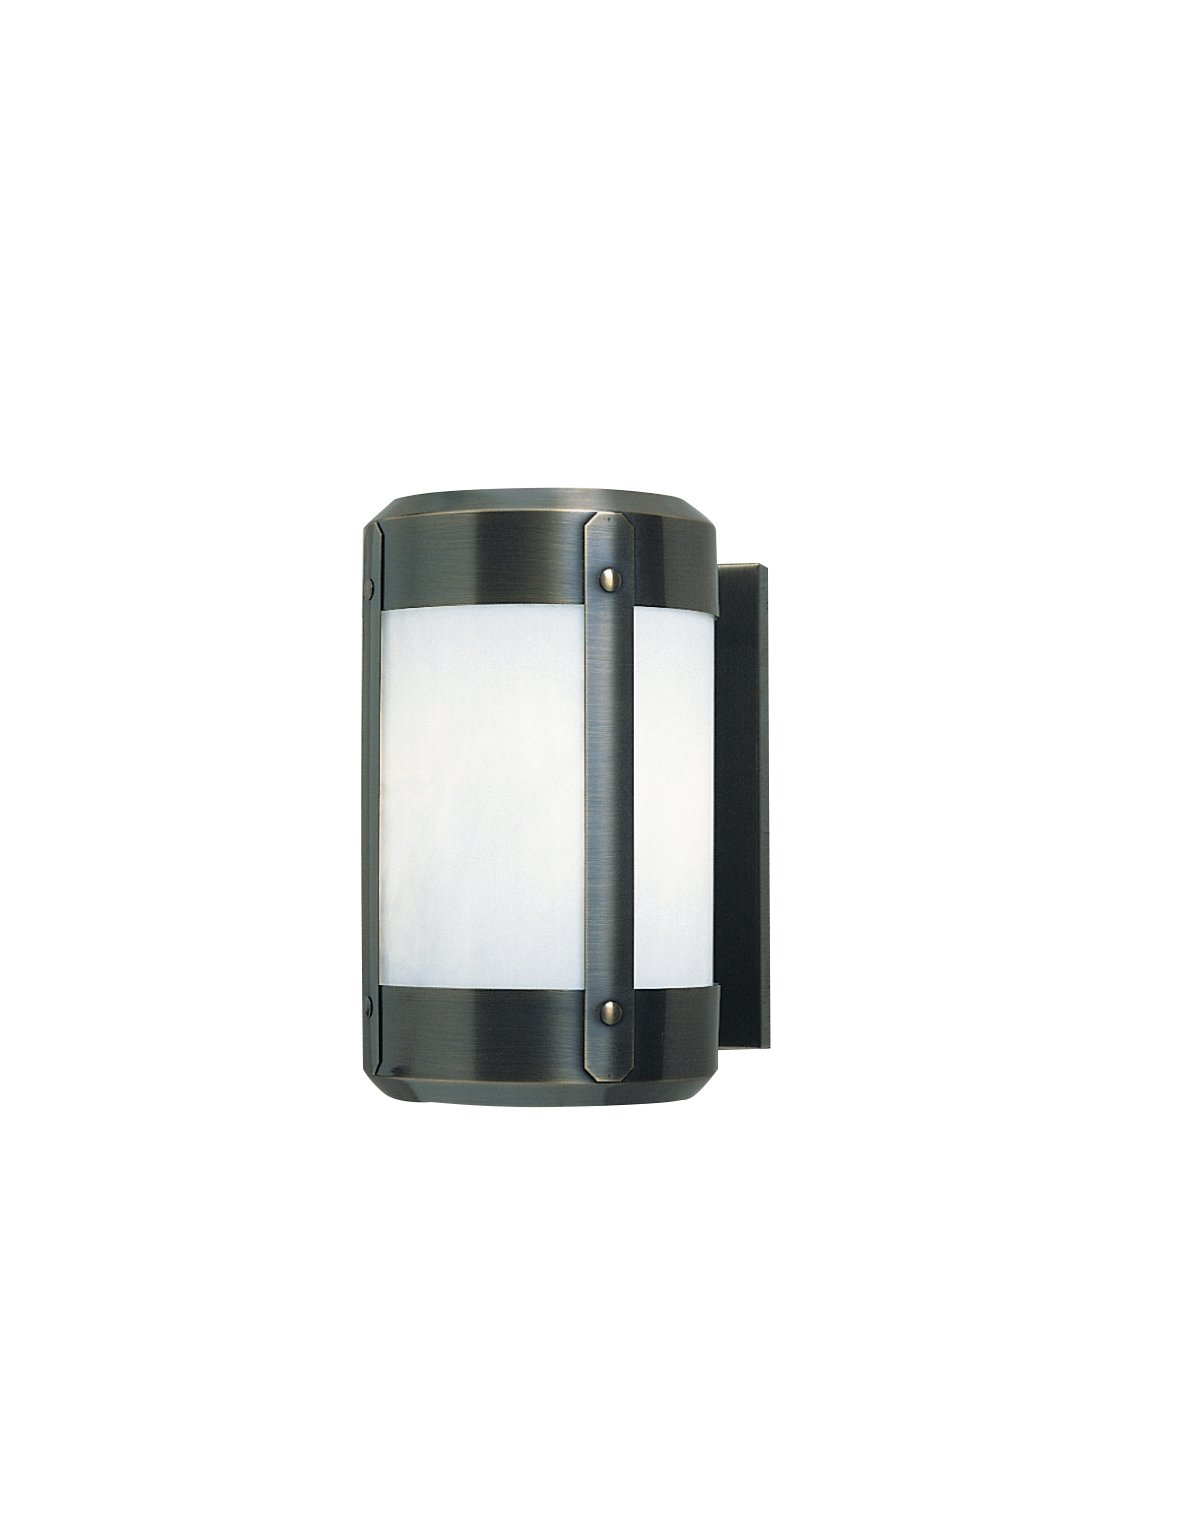 Arroyo Craftsman BS-8RCR-MB Berkeley Wall Sconce with Roof, 8'', Mission Brown Metal Finish, Cream Glass